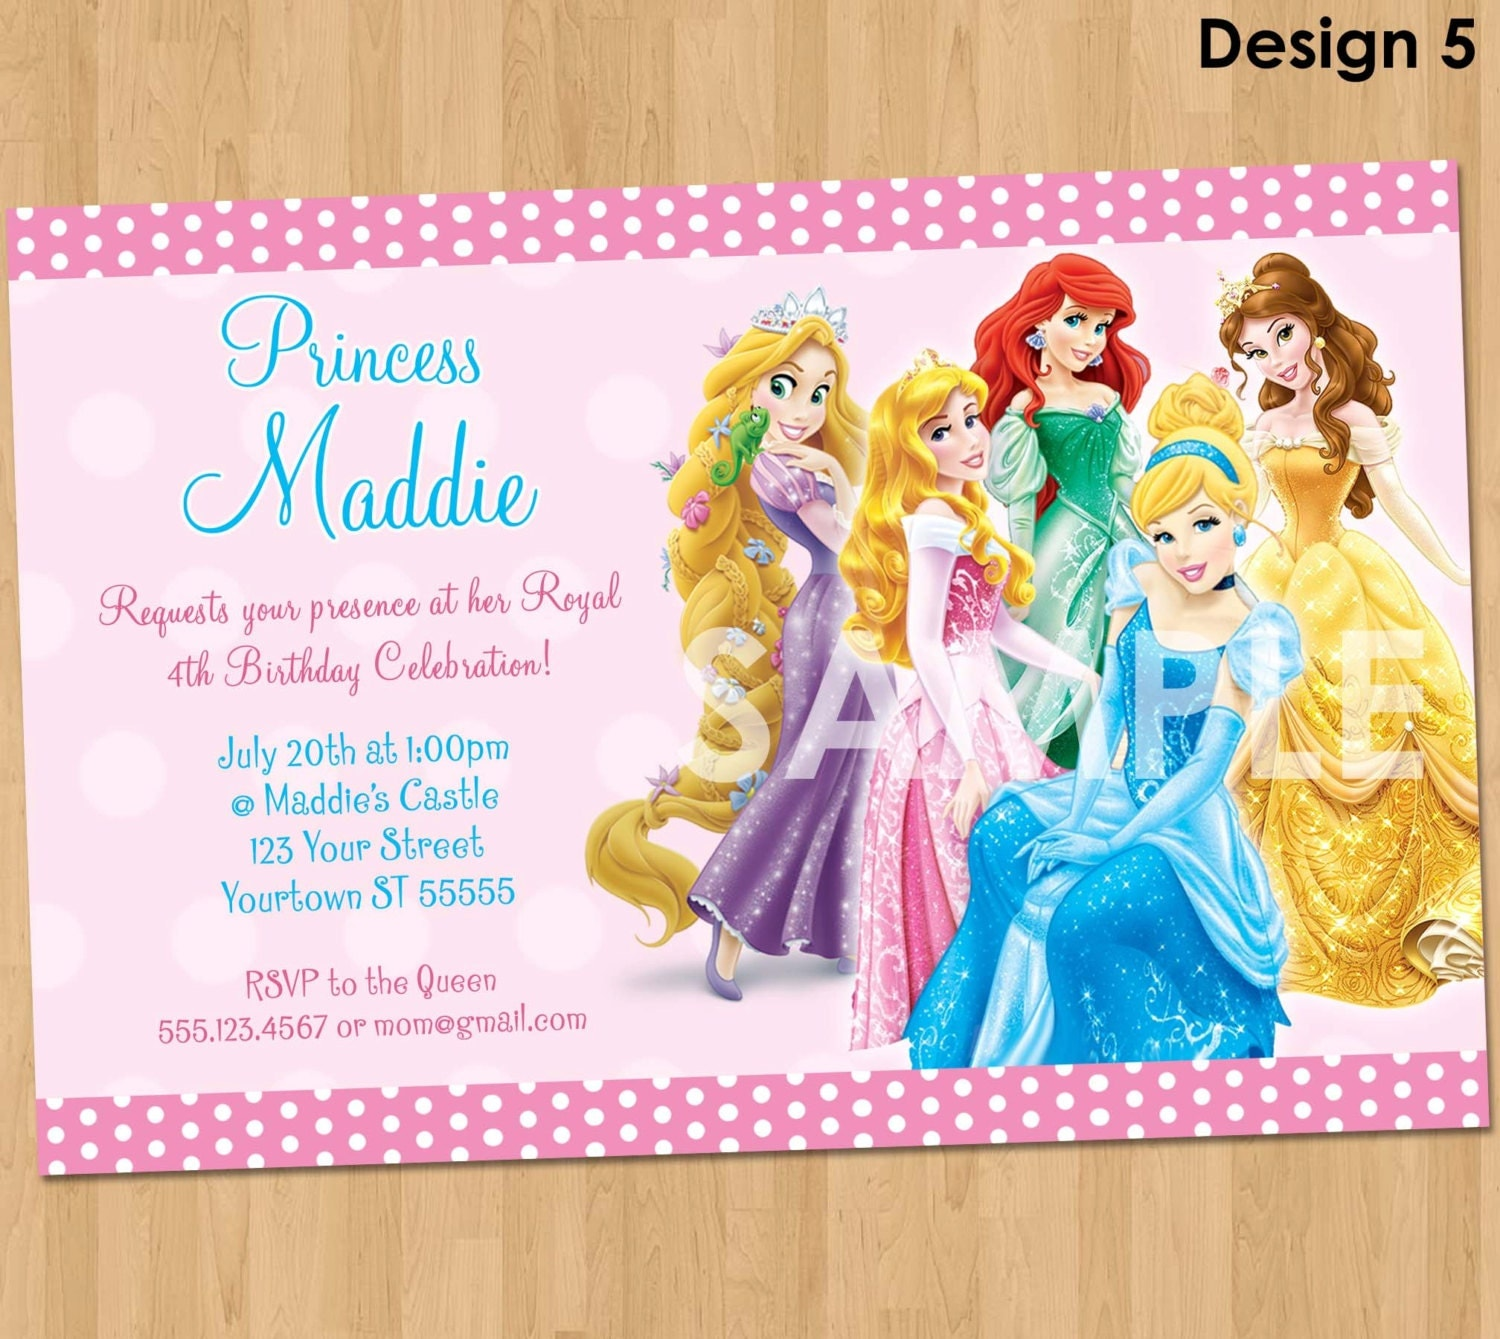 Princess Invitation Disney Princess Invitation Birthday – Disney Princess Party Invitations Printable